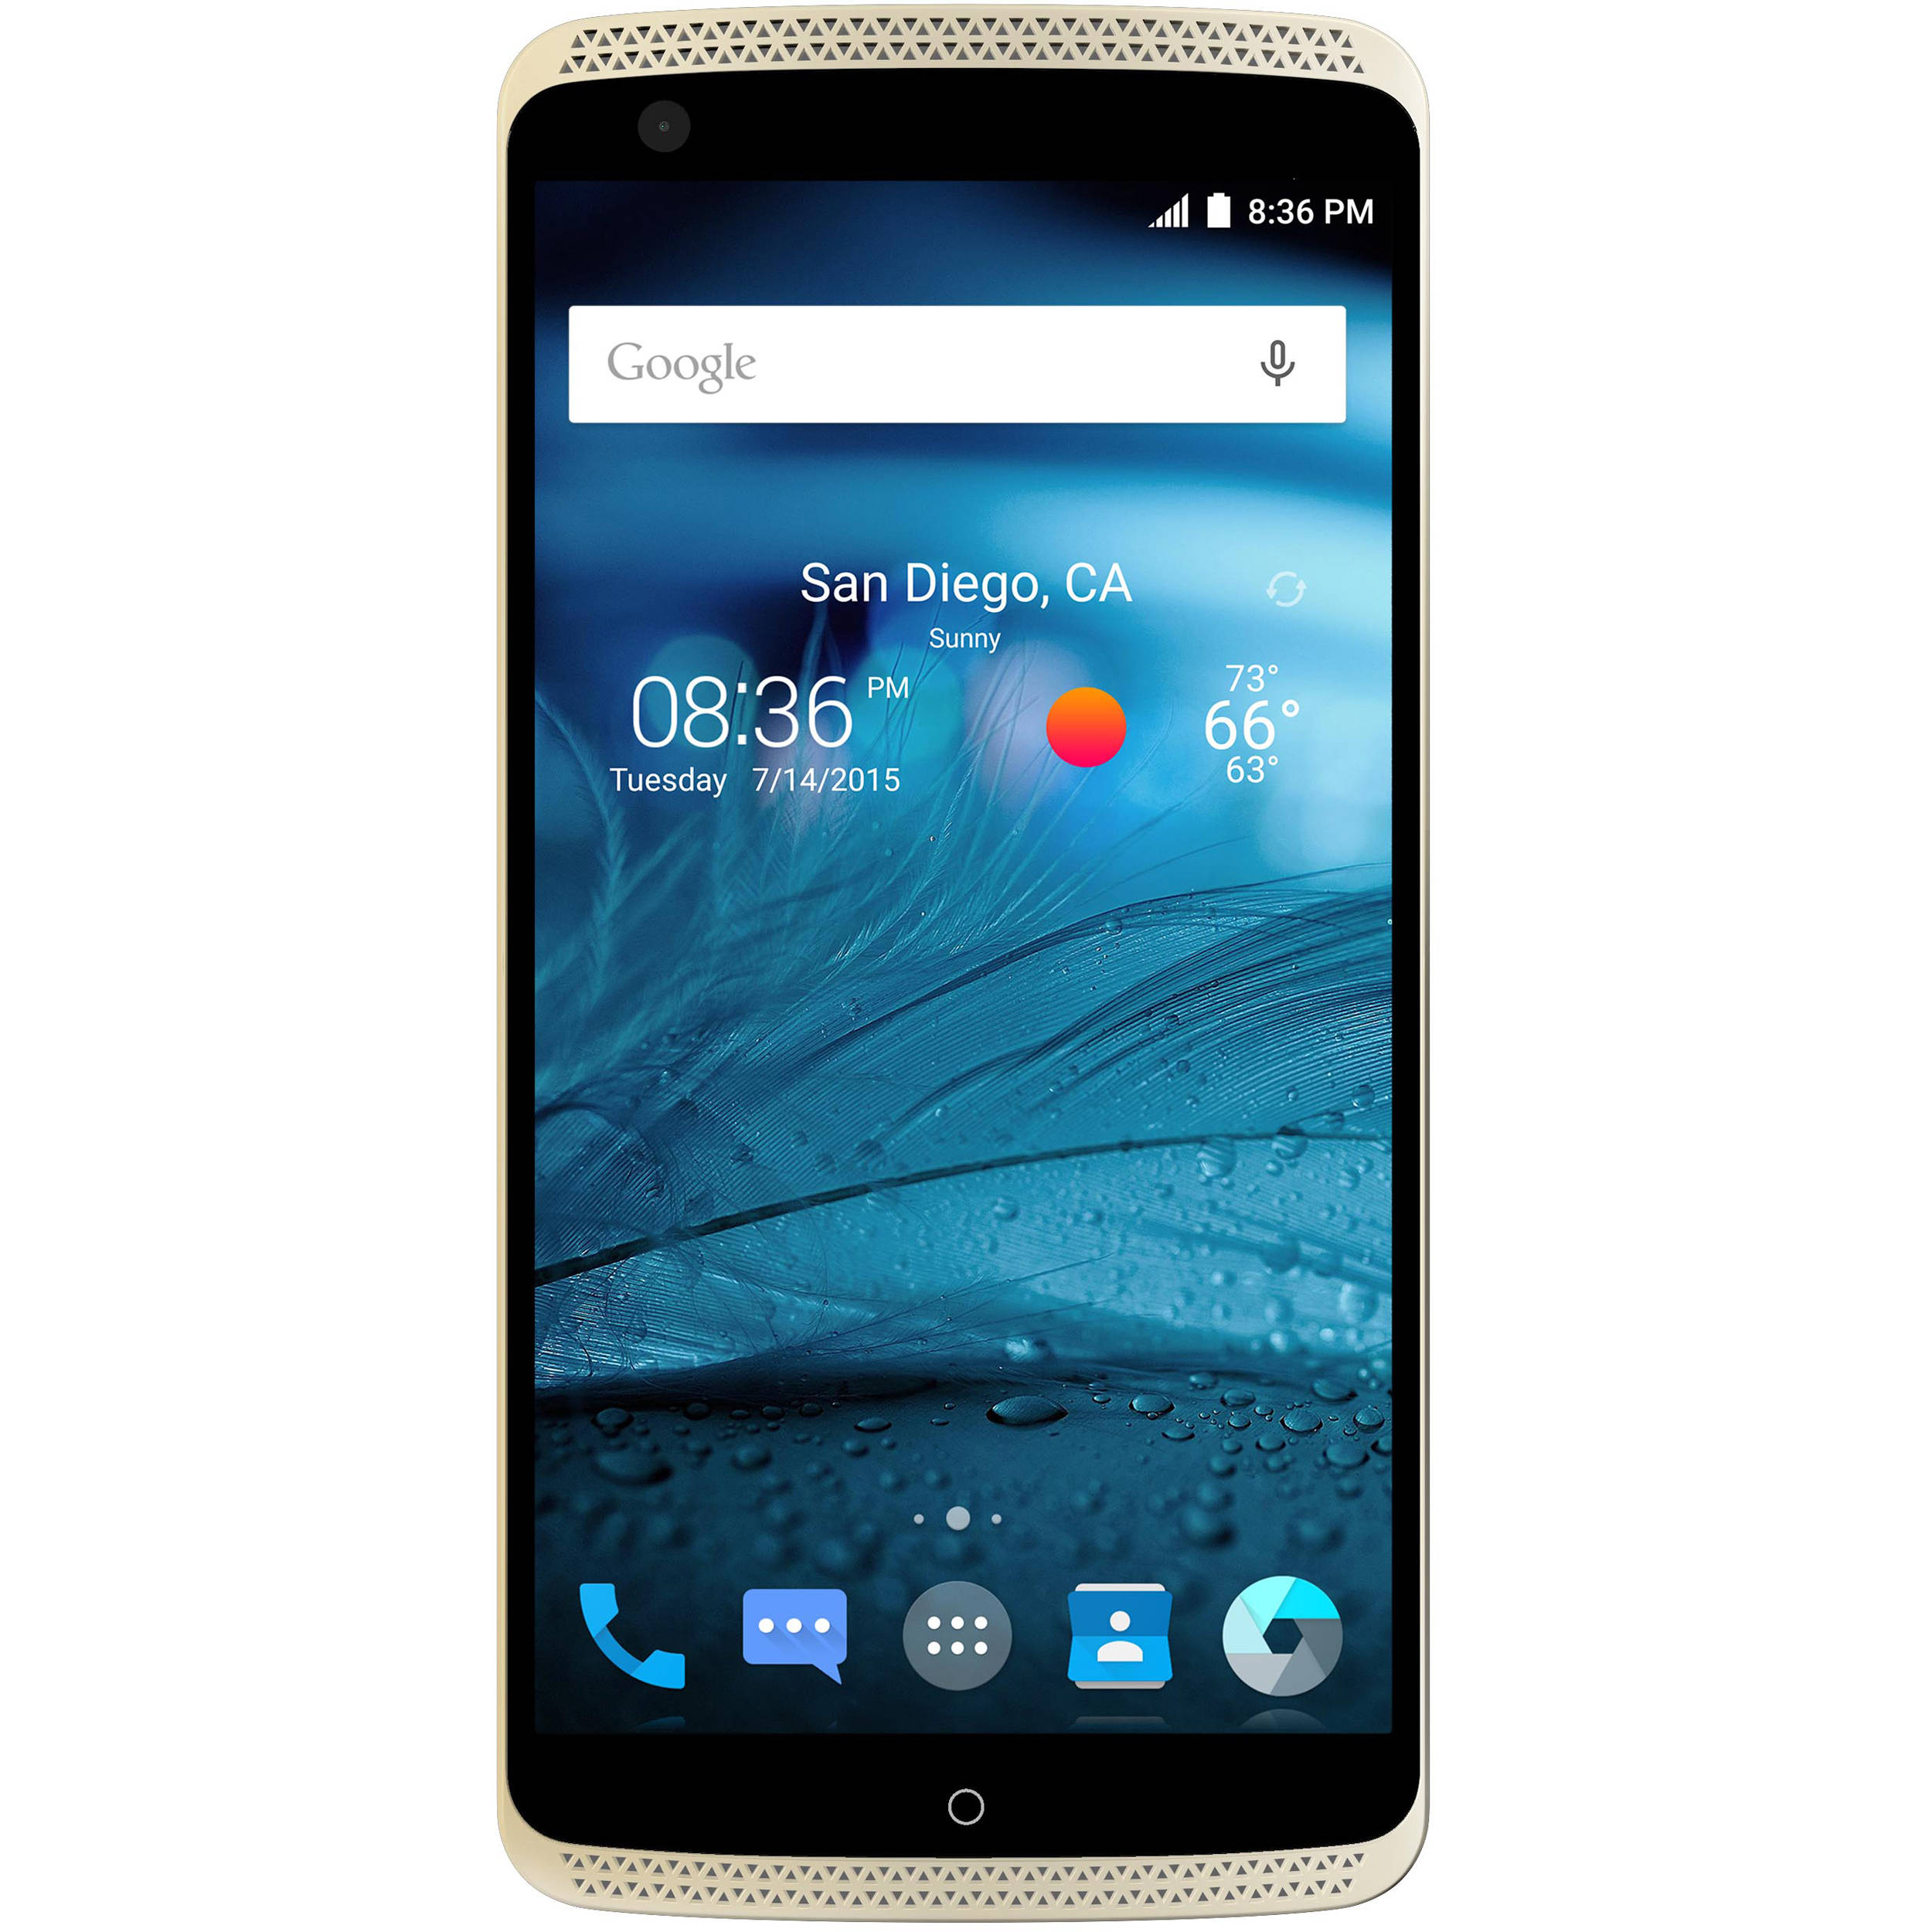 Zte axon unlocked smartphone review